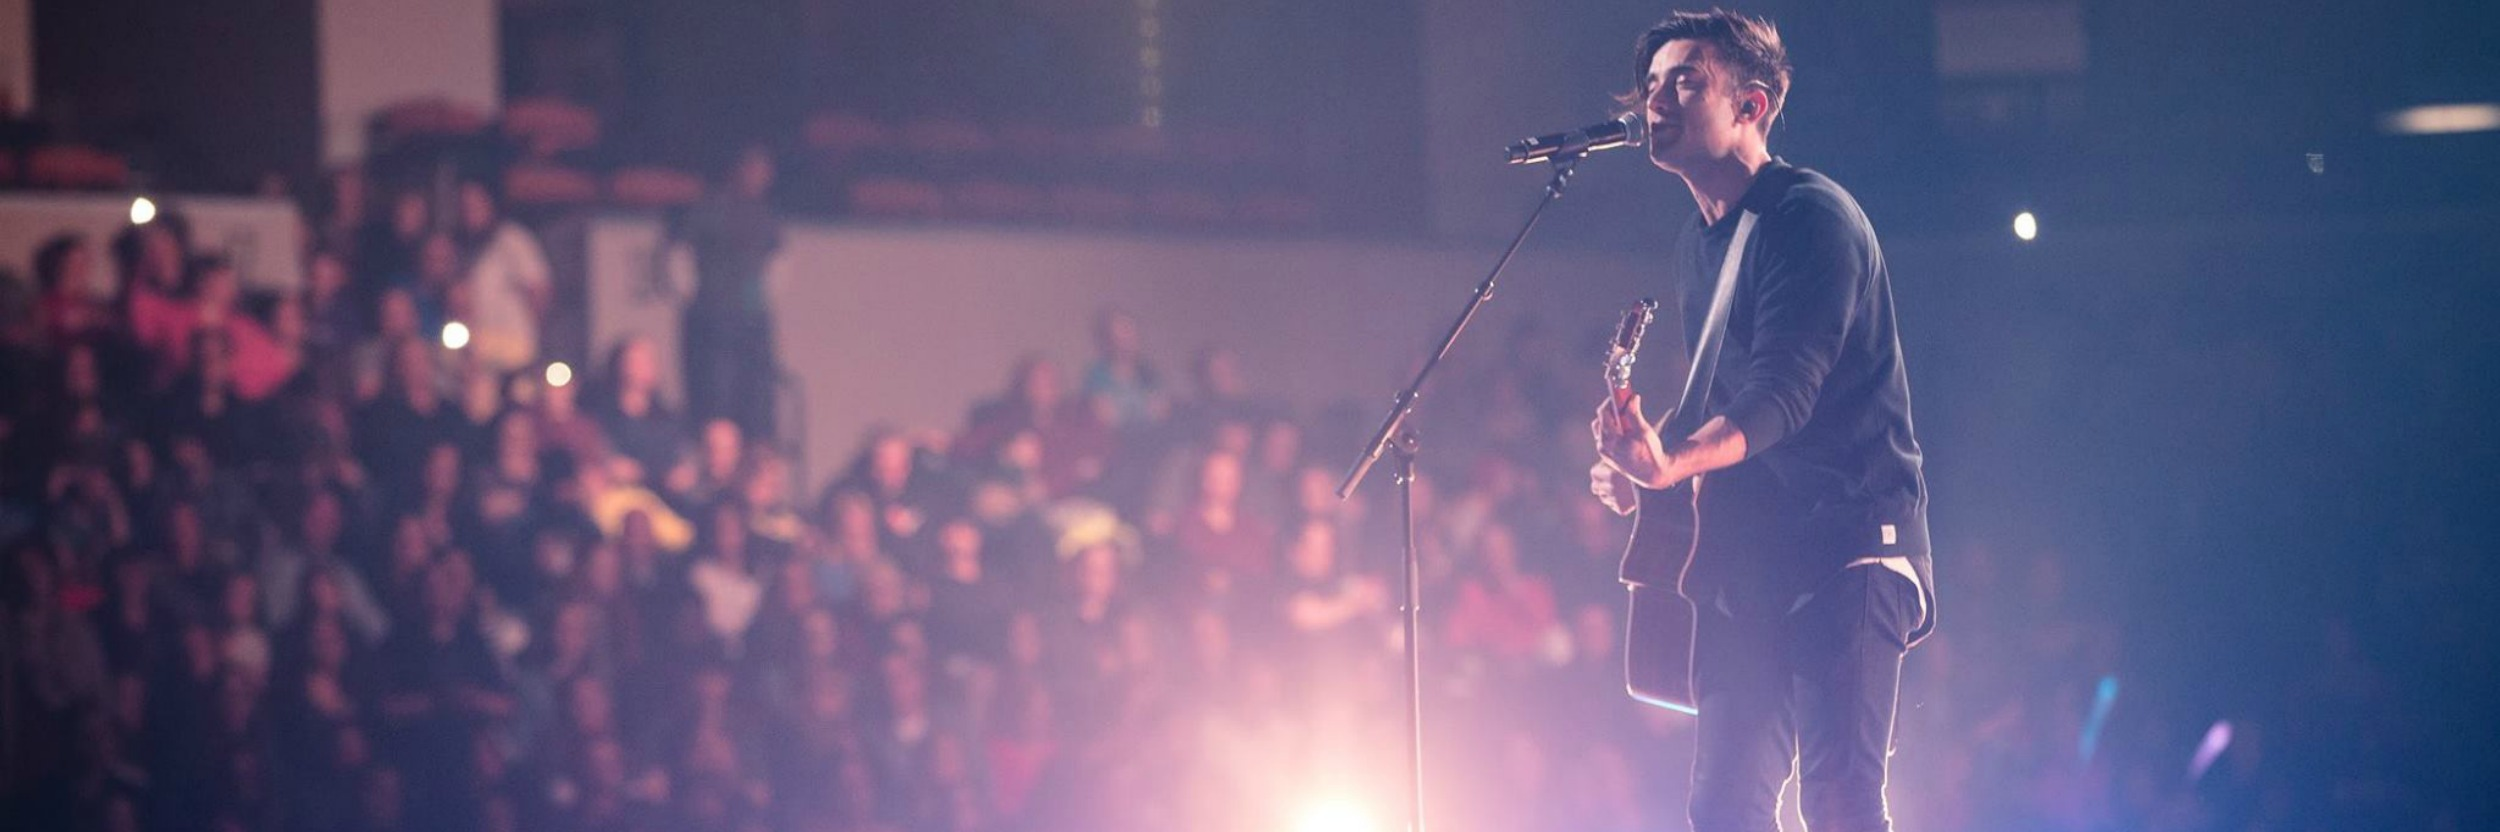 Phil Wickham, one of the many artists whose music you can licence on SongFreedom.